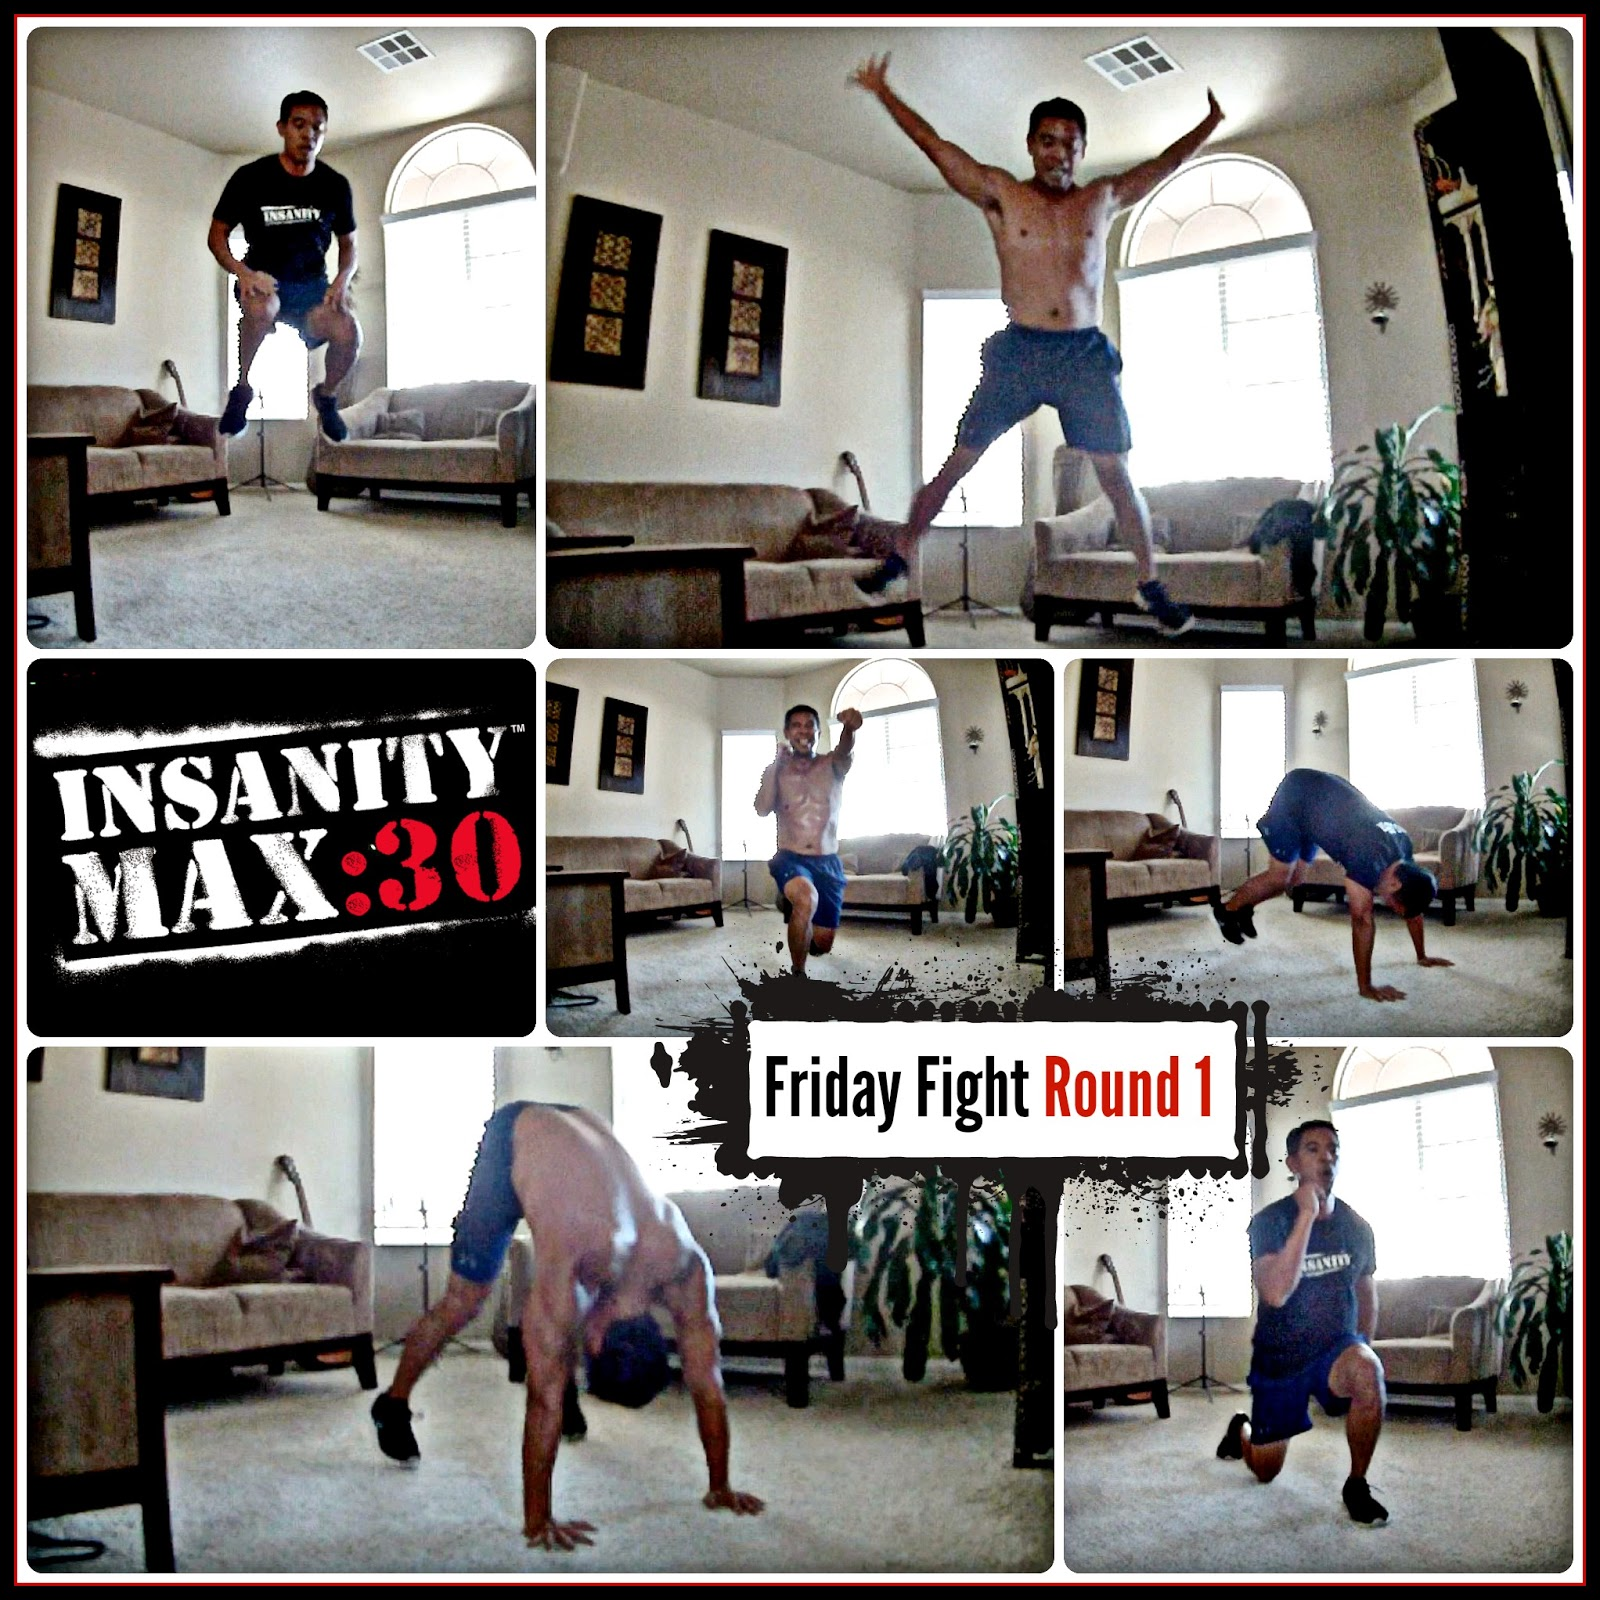 Insanity Max 30 - Friday Fight Round 1 Workout